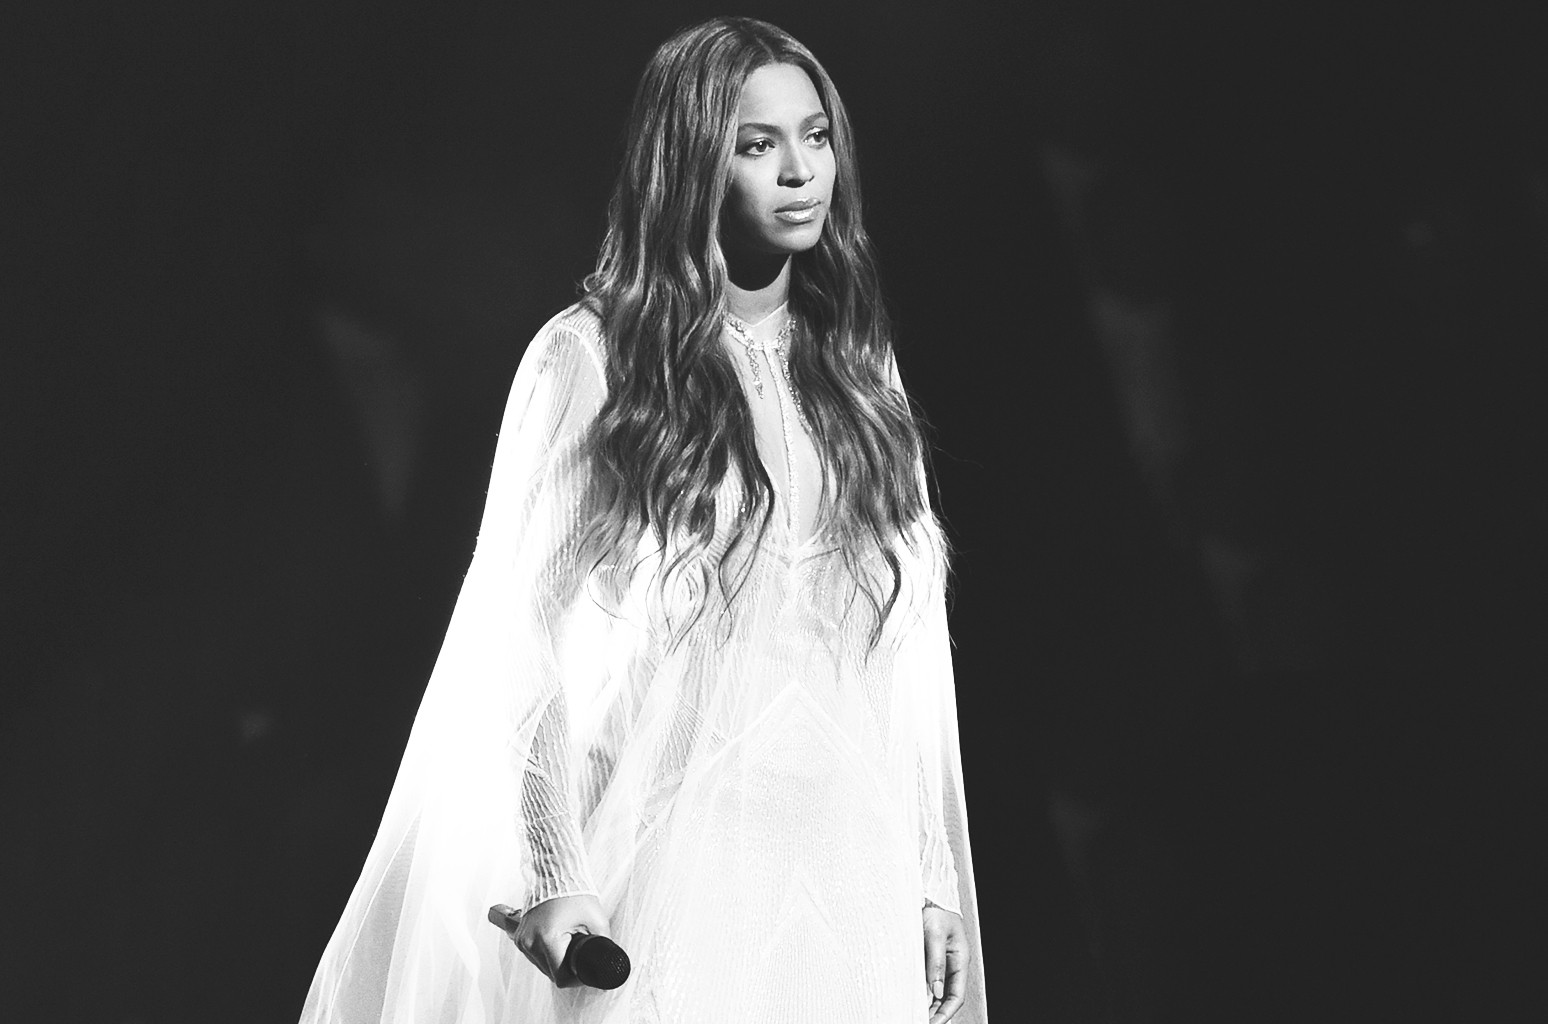 Beyonce performs at the 57th annual Grammy Awards on Feb. 8, 2015 in Los Angeles.